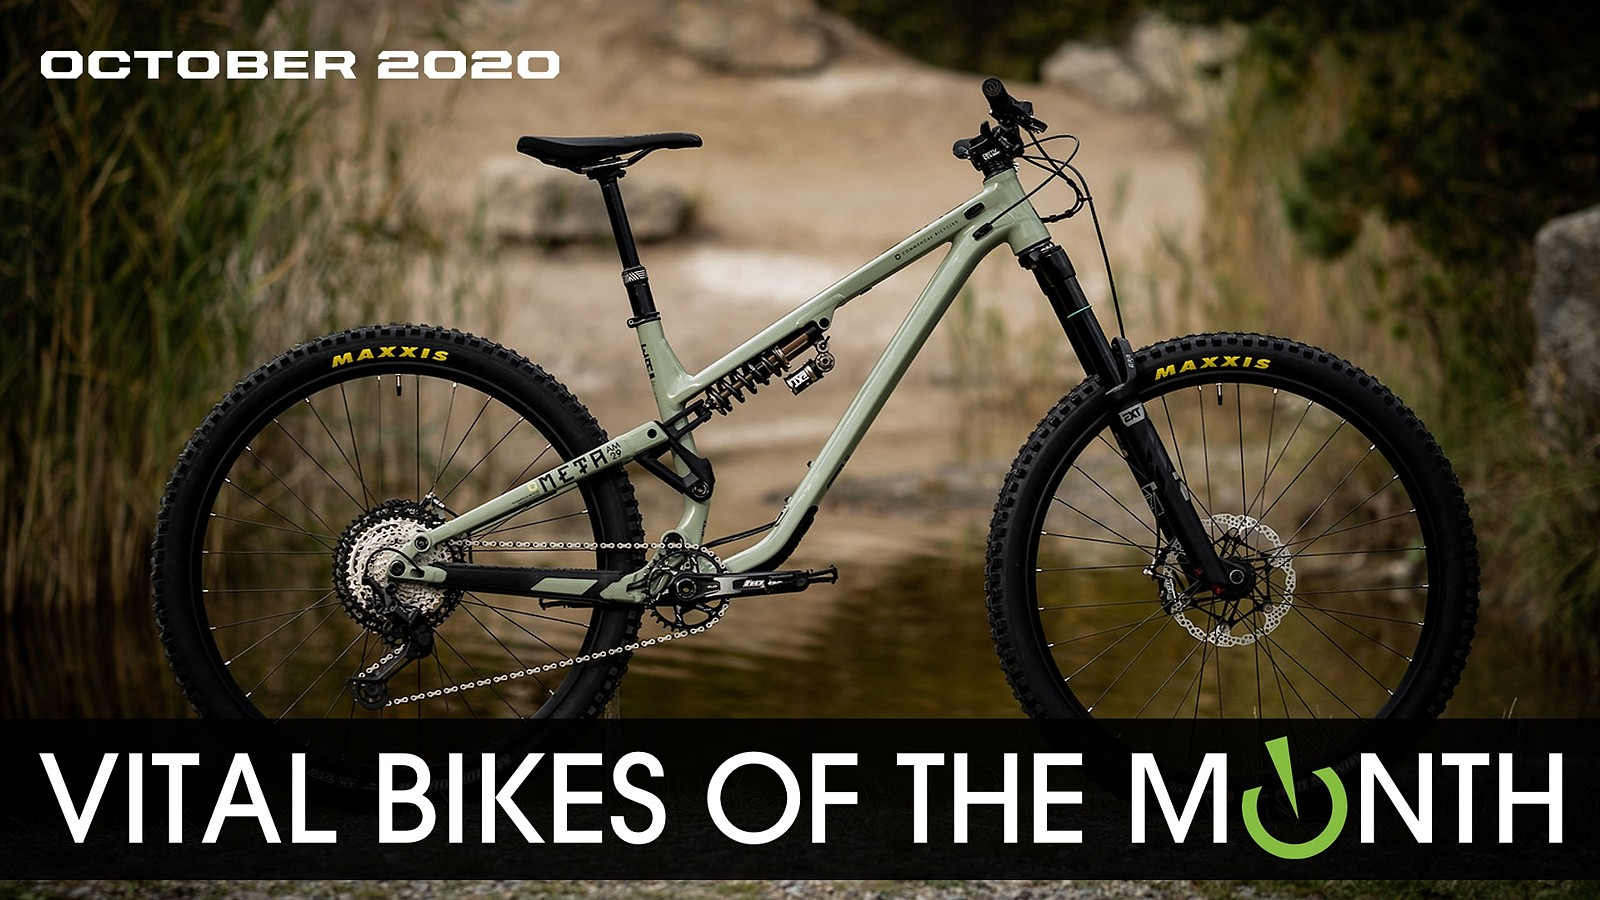 Vital Bikes of the Month, October 2020 - Vital Bike of the Day October 2020 - Mountain Biking Pictures - Vital MTB